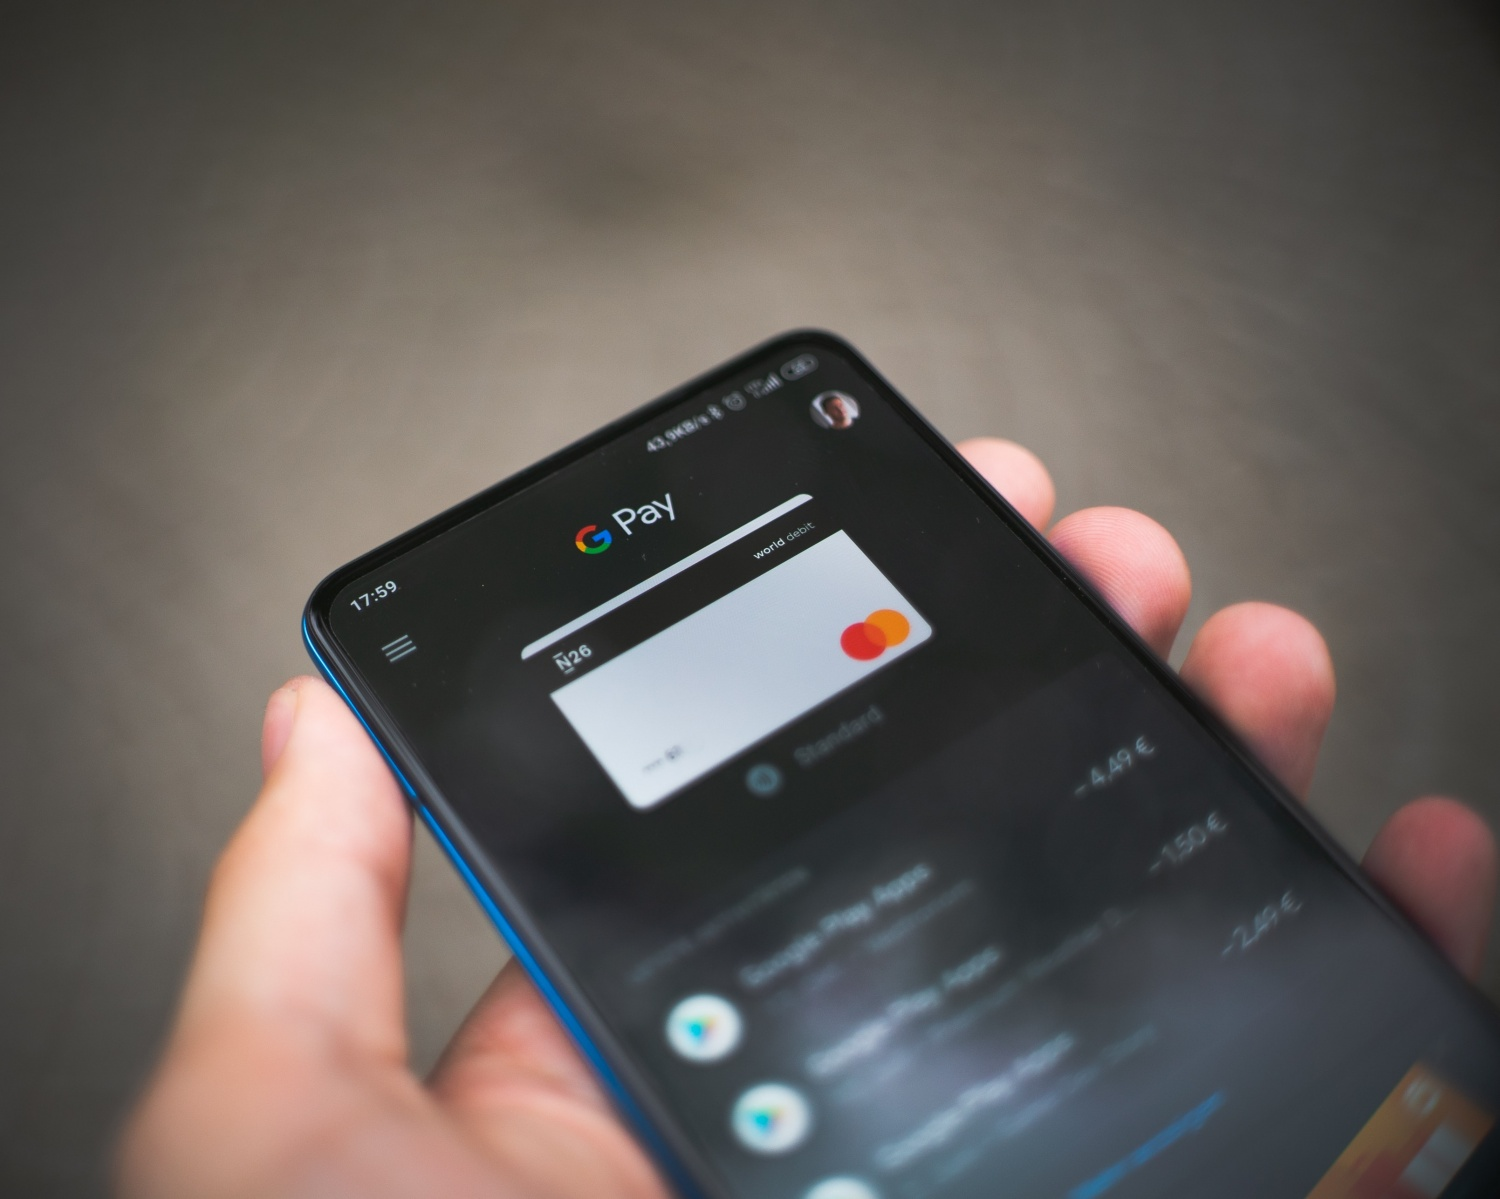 Google Pay Adds International New Banks in 9 Countries and User-to-User Transfers in Singapore